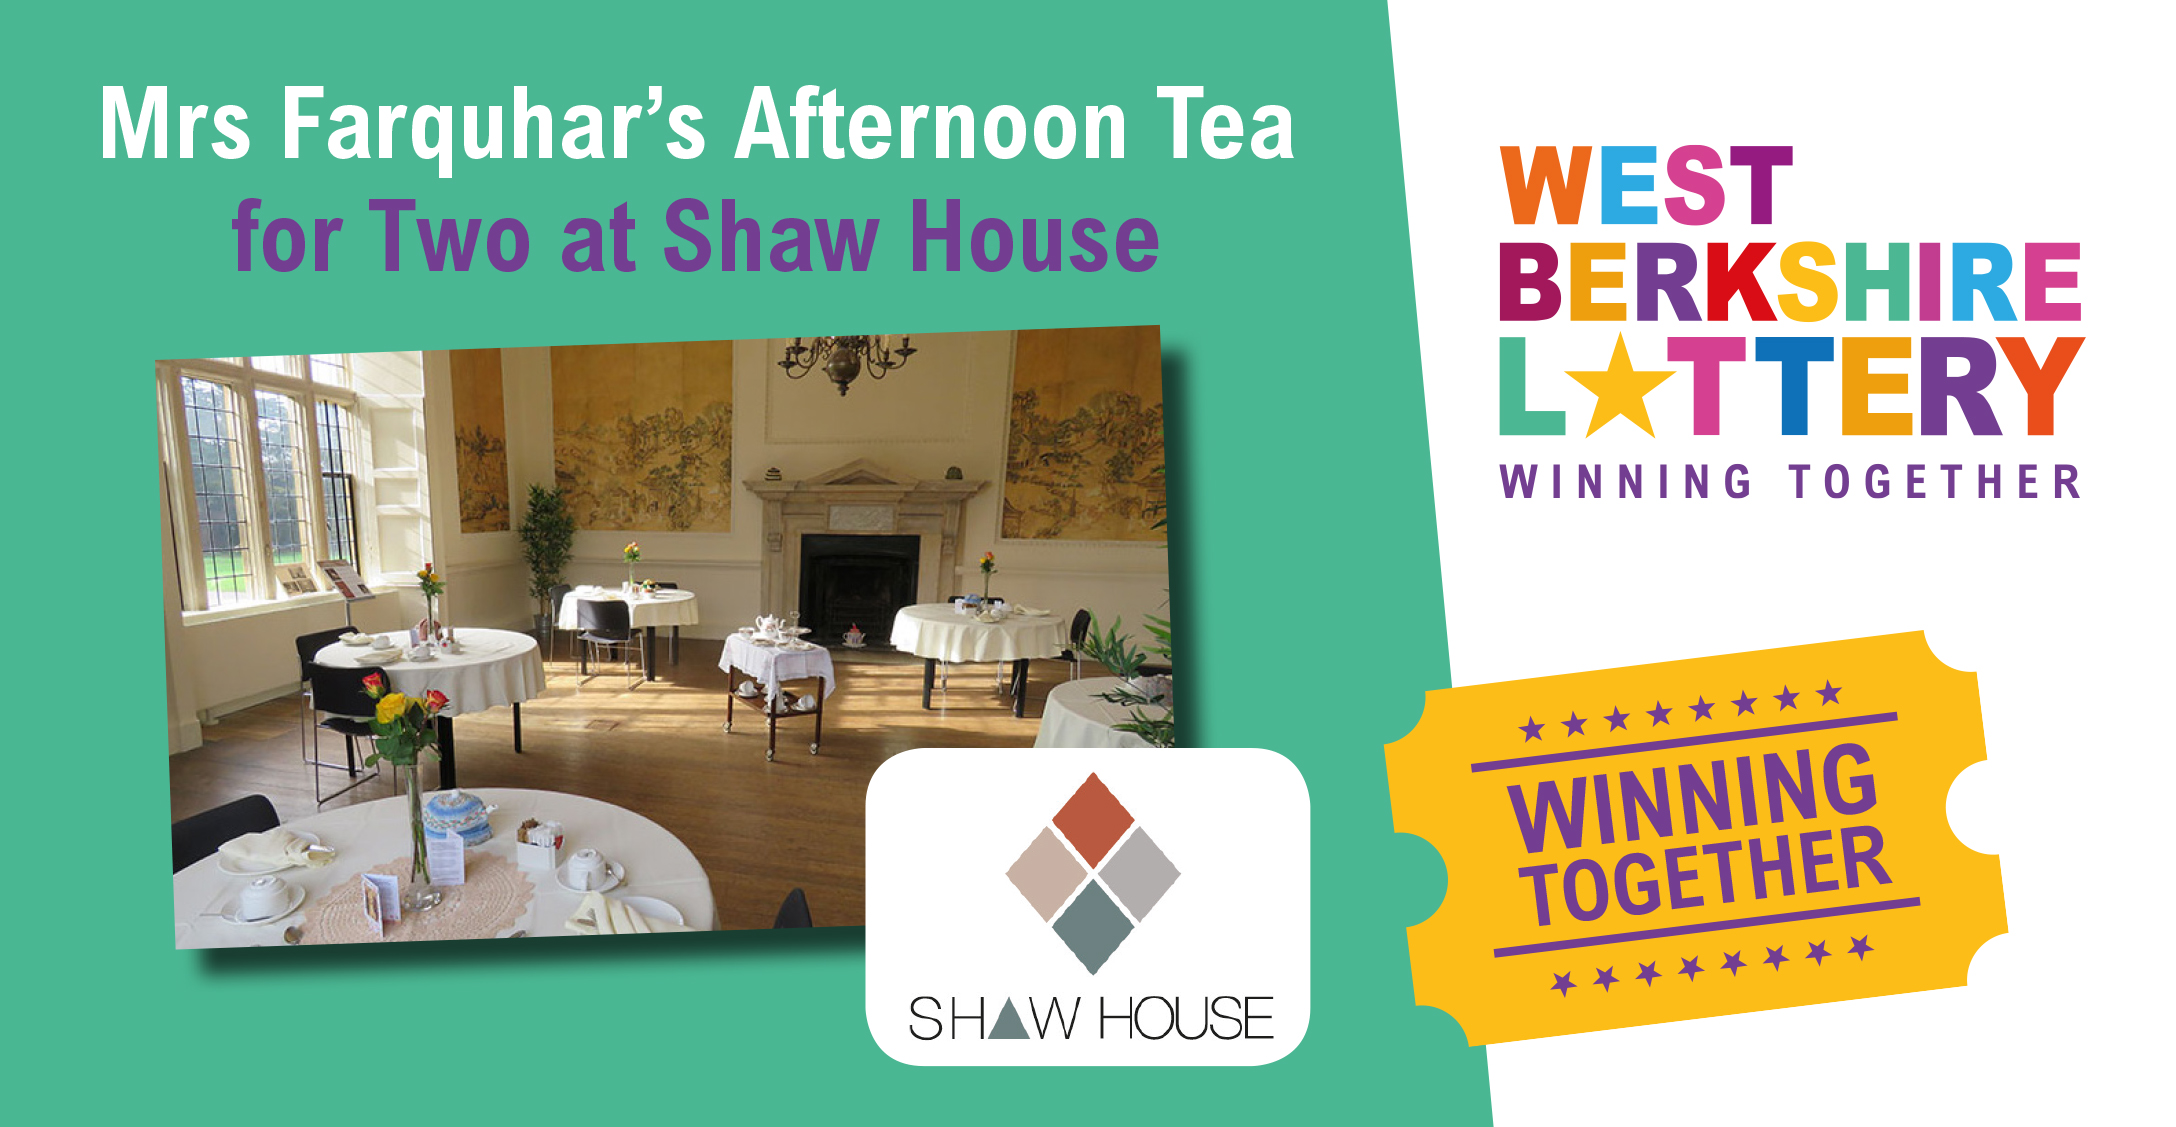 Win Afternoon Tea for Two at Shaw House in this weeks Summer Raffle!